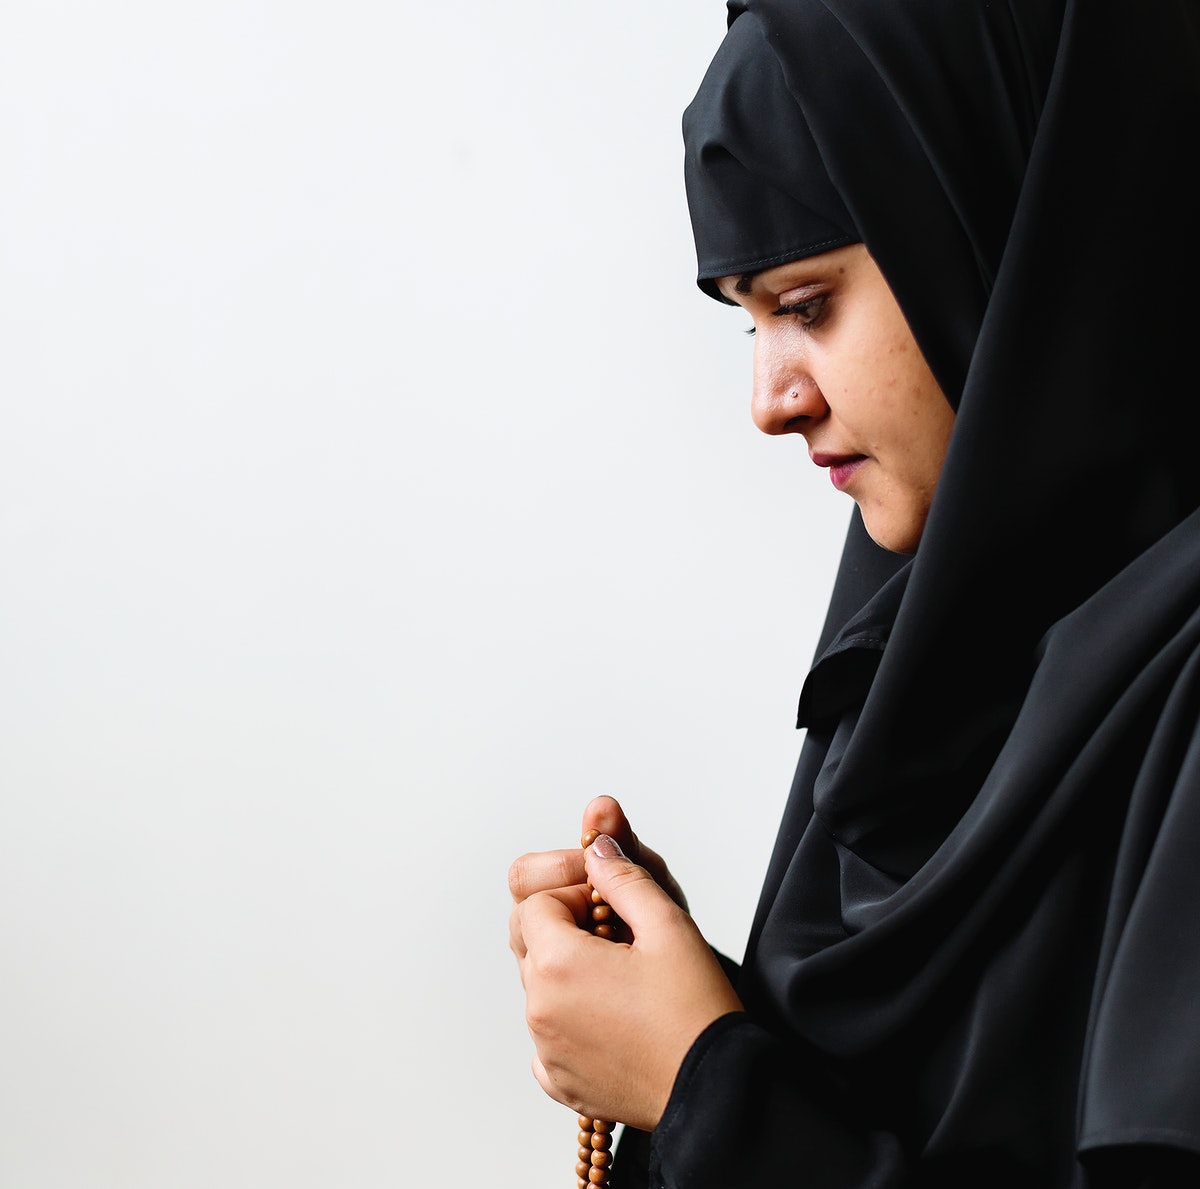 Muslim woman using misbaha to keep track of counting in tasbih